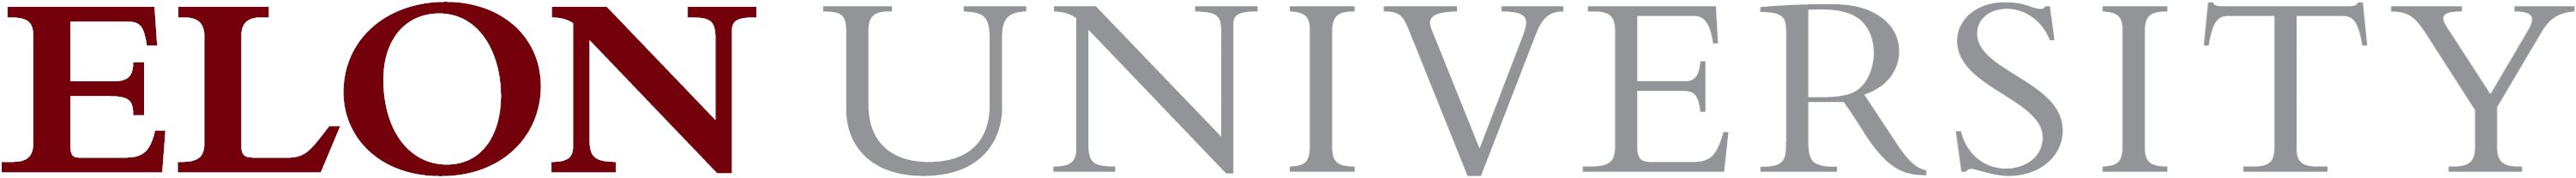 Elon University primary wordmark one-line example